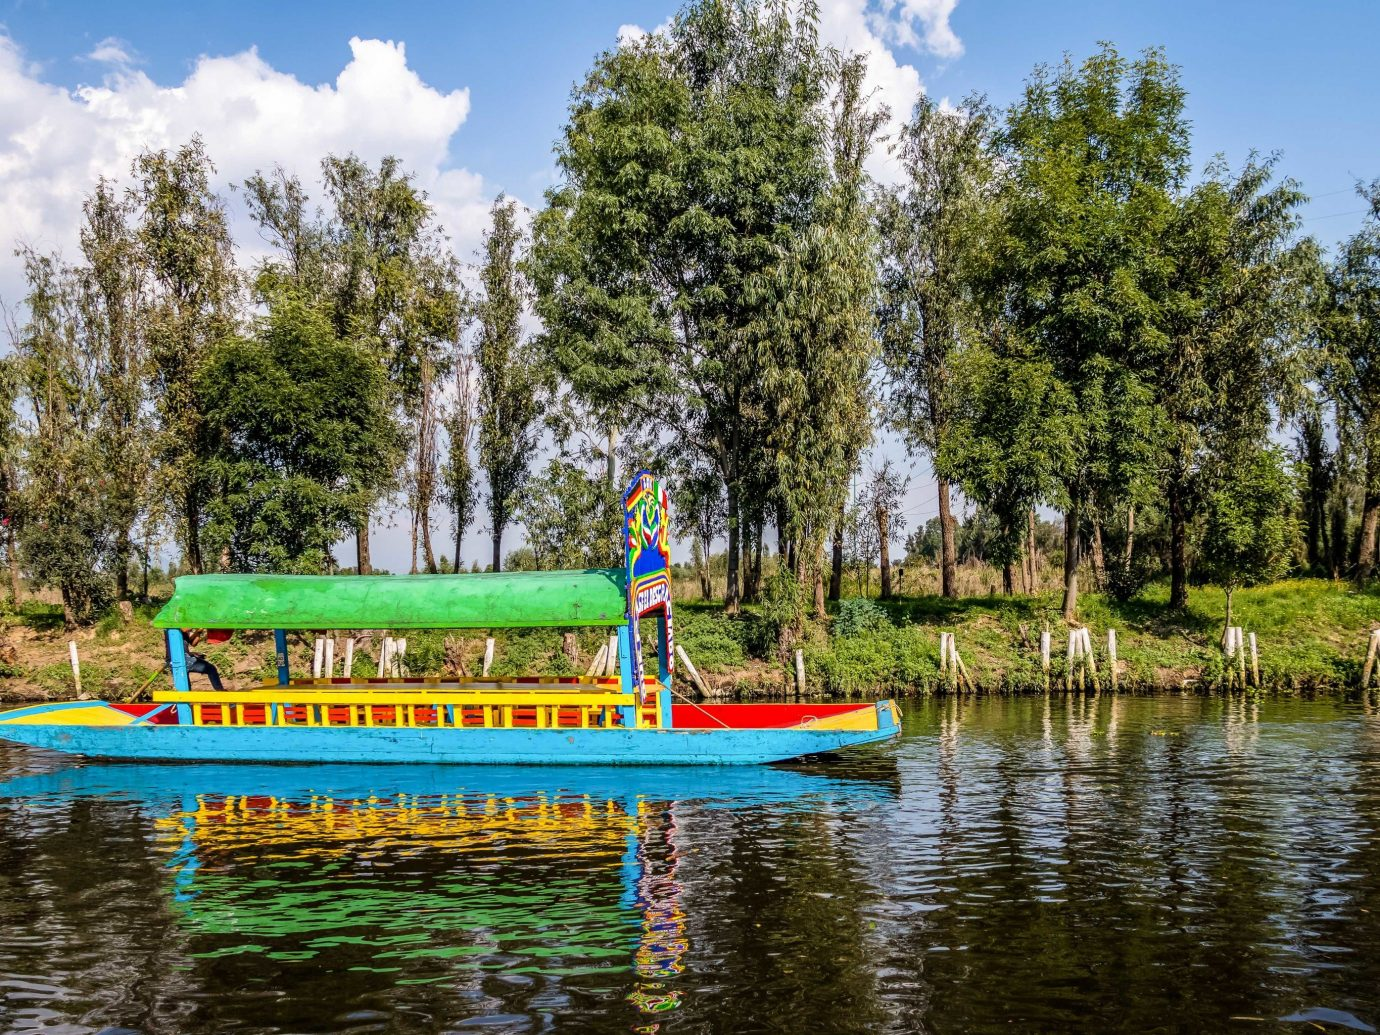 City Mexico City Trip Ideas tree outdoor water sky green waterway Nature body of water water transportation reflection plant bayou Boat Lake leisure River wetland landscape Canal pond bank recreation tourism watercourse colored Forest colorful Raft wooded